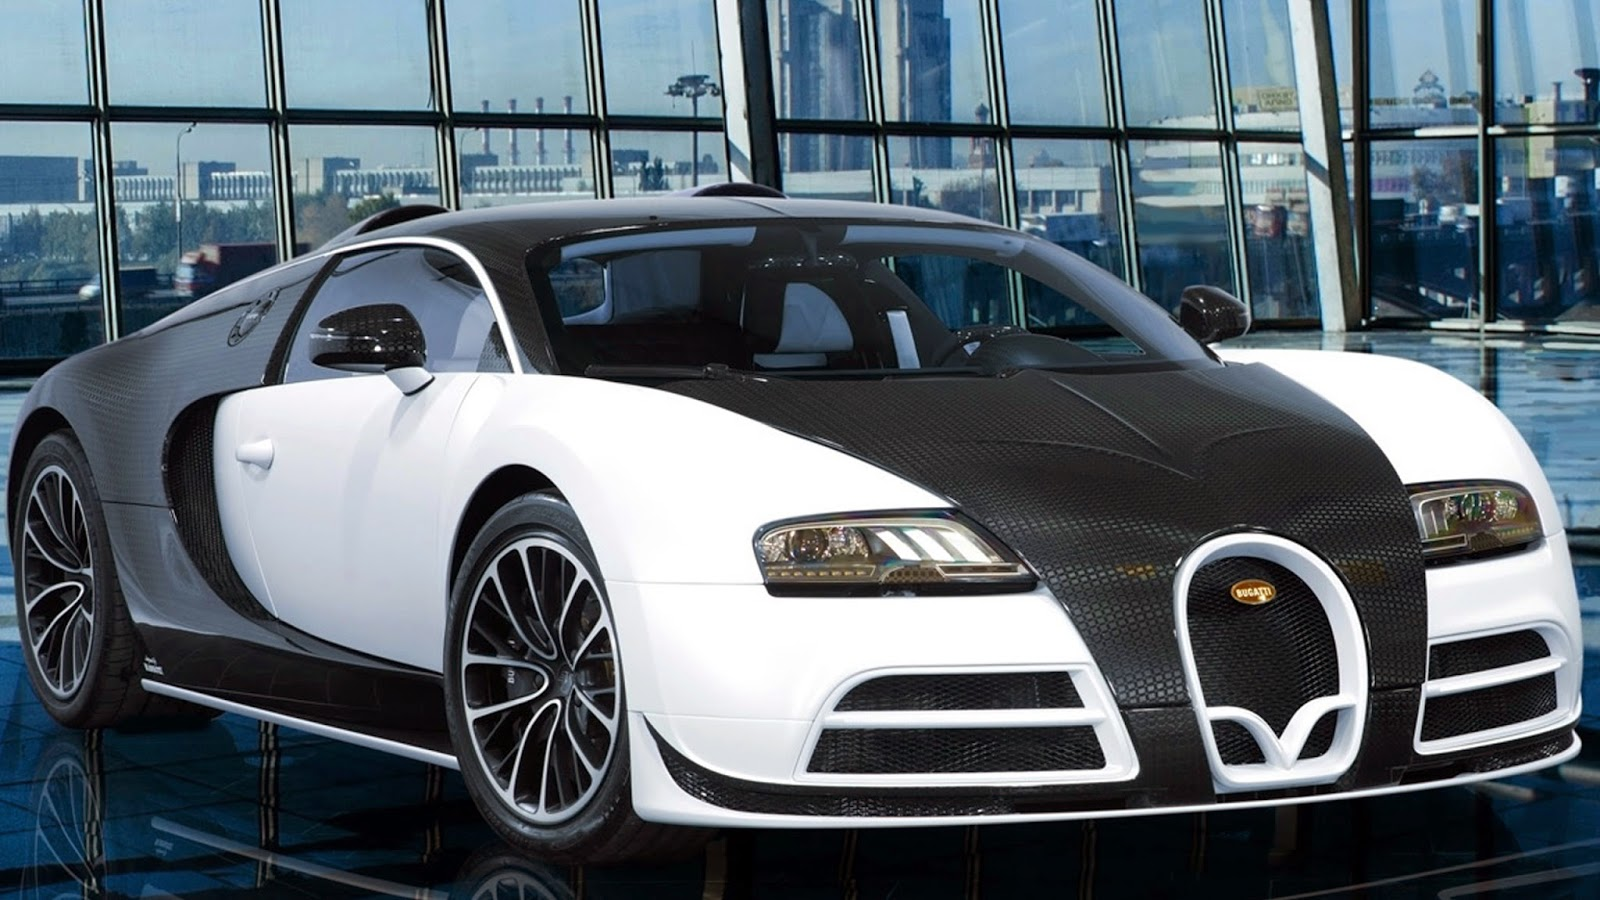 From Mansory Press Release Mansory Vivere A Strictly Limited Edition Bugatti Veyron Masterpiece Mansory Are Adding To Their Modified Bugatti Veyron